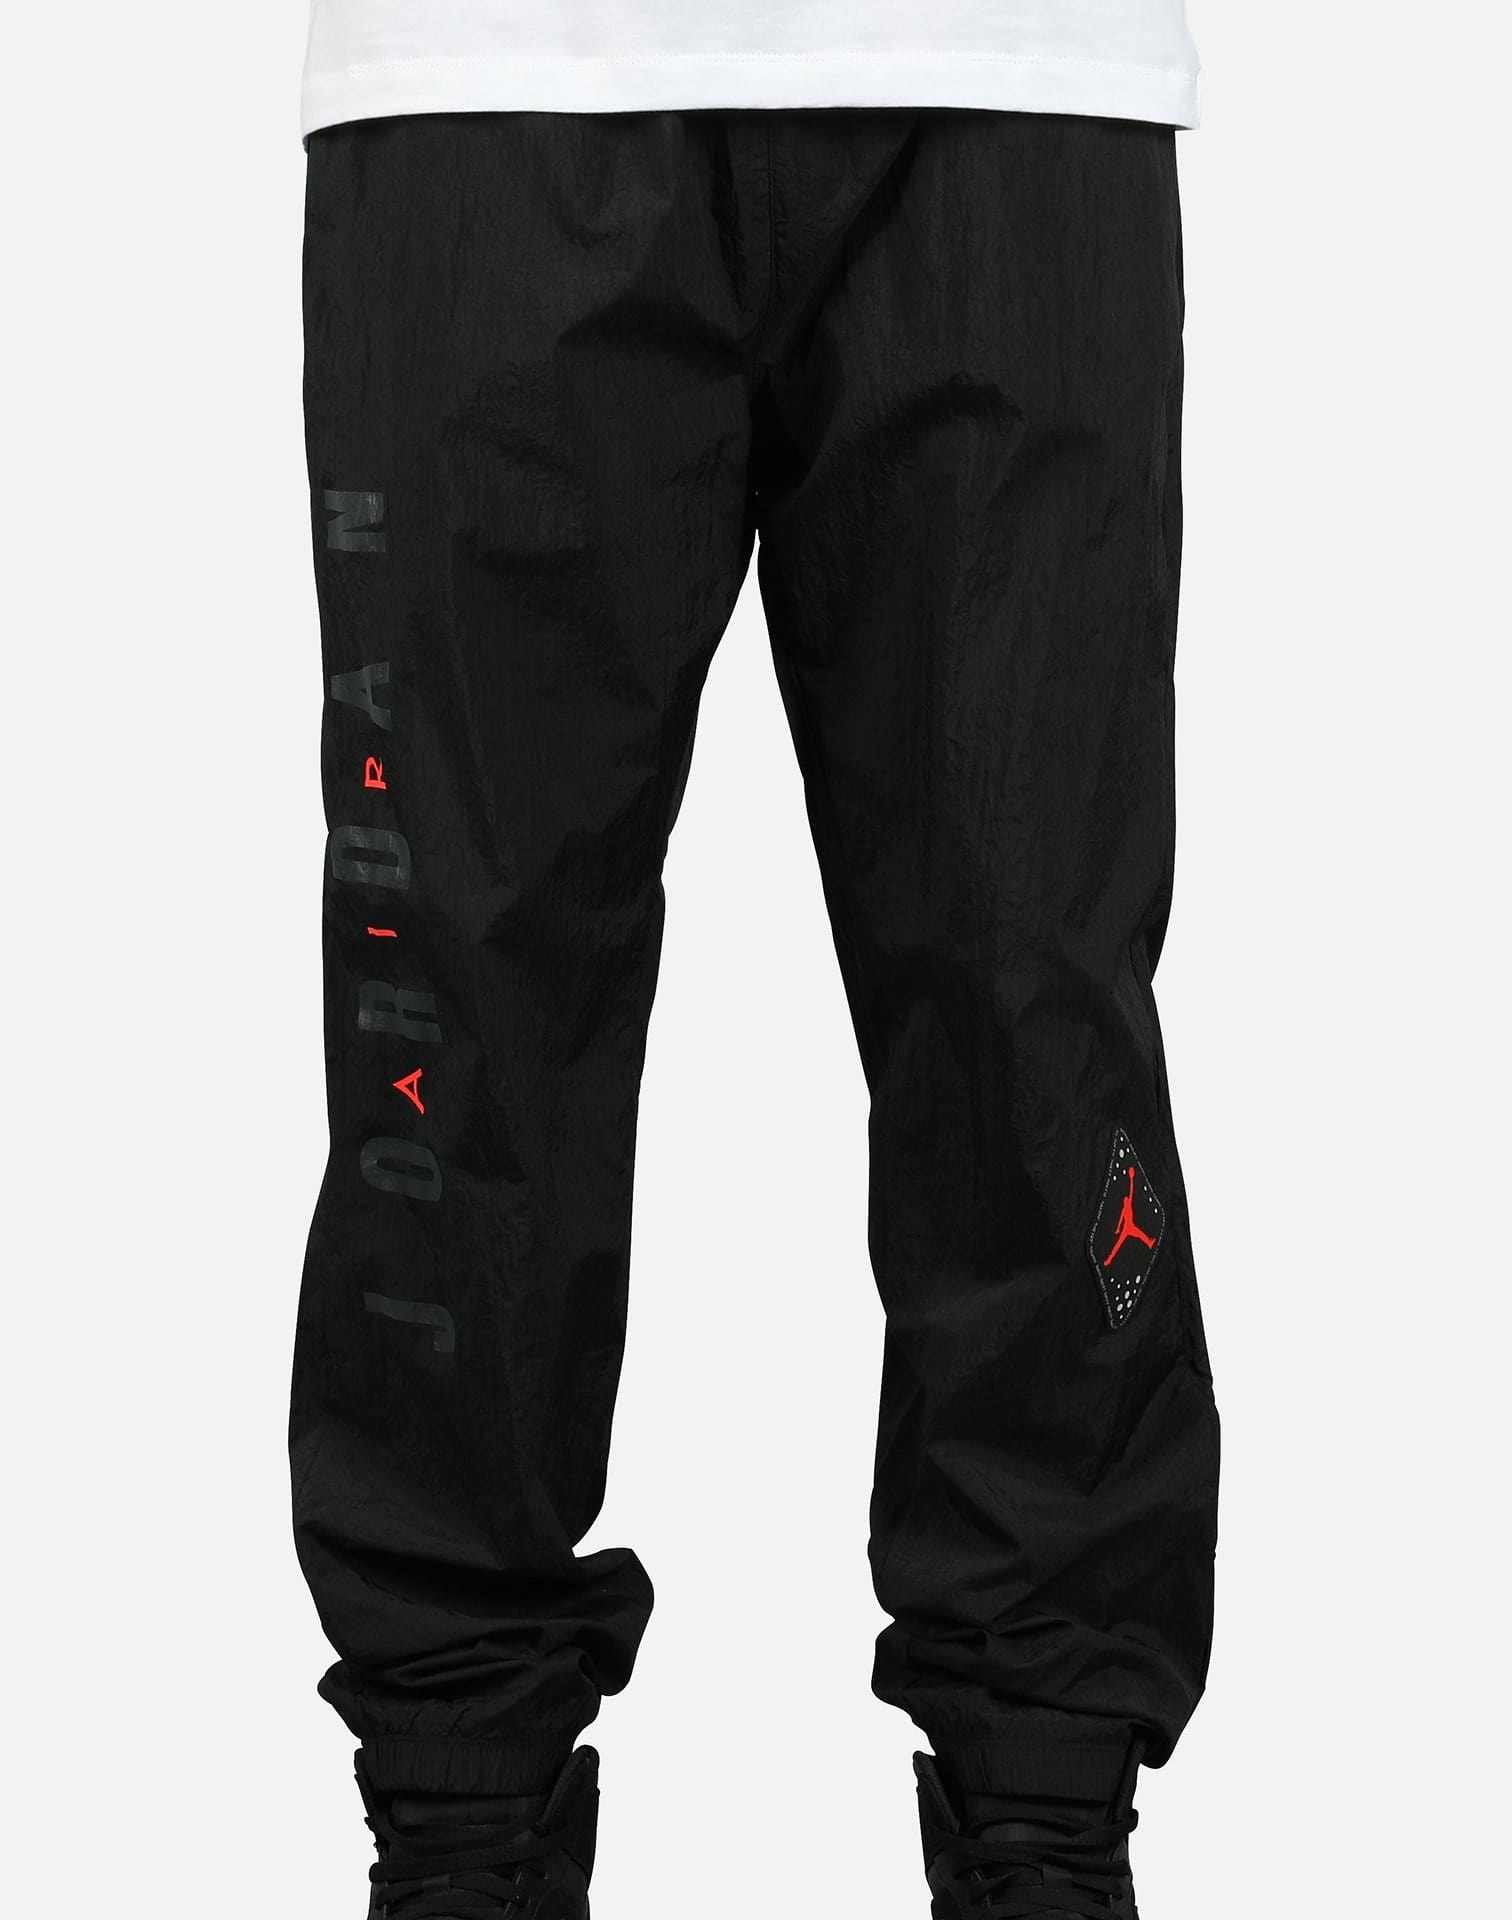 Jordan Men's AJ 6 Retro 6 Nylon Pants